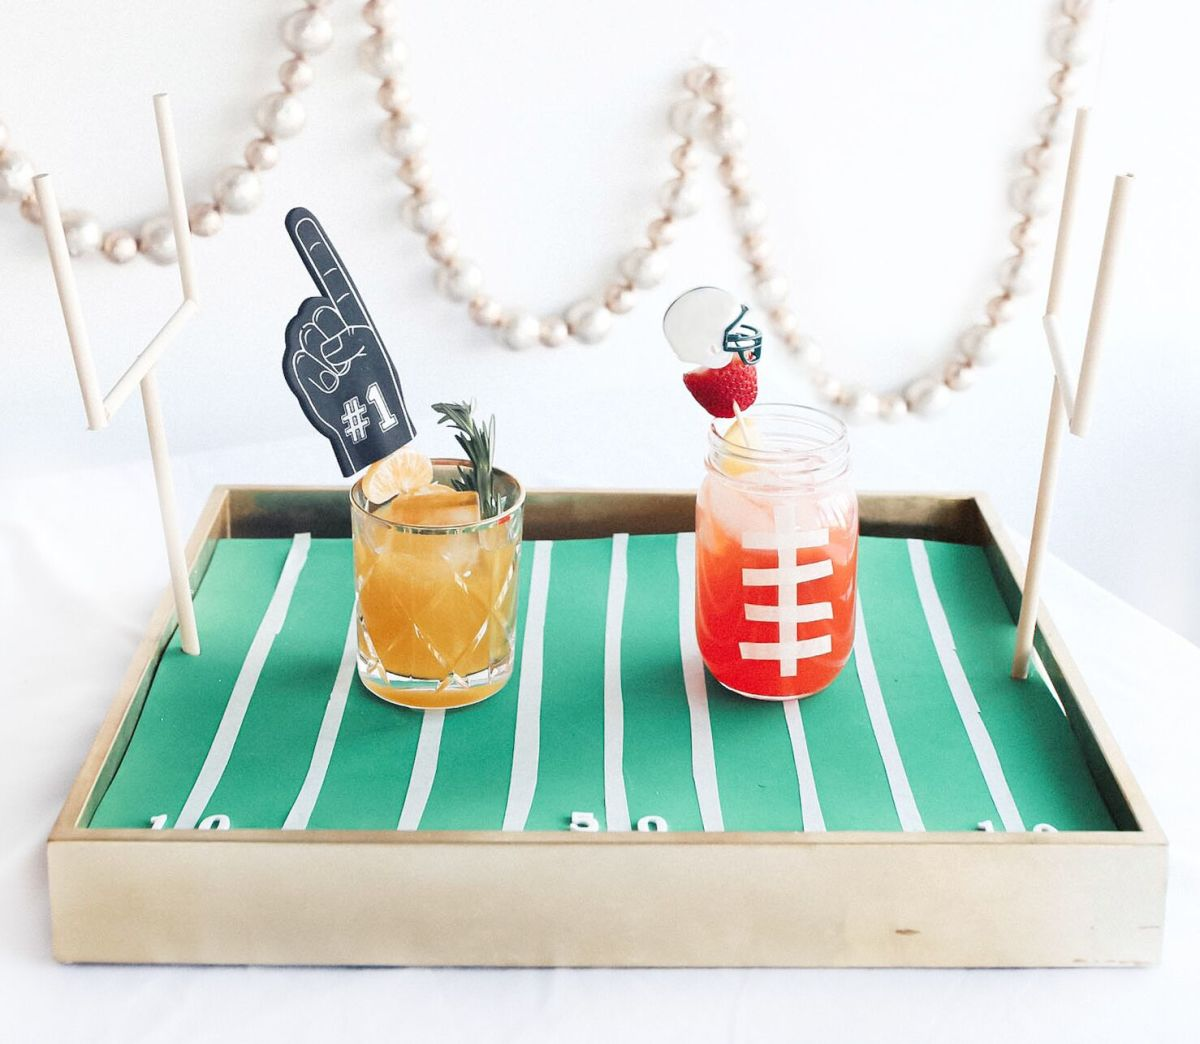 Super bowl cocktail mocktail showdown